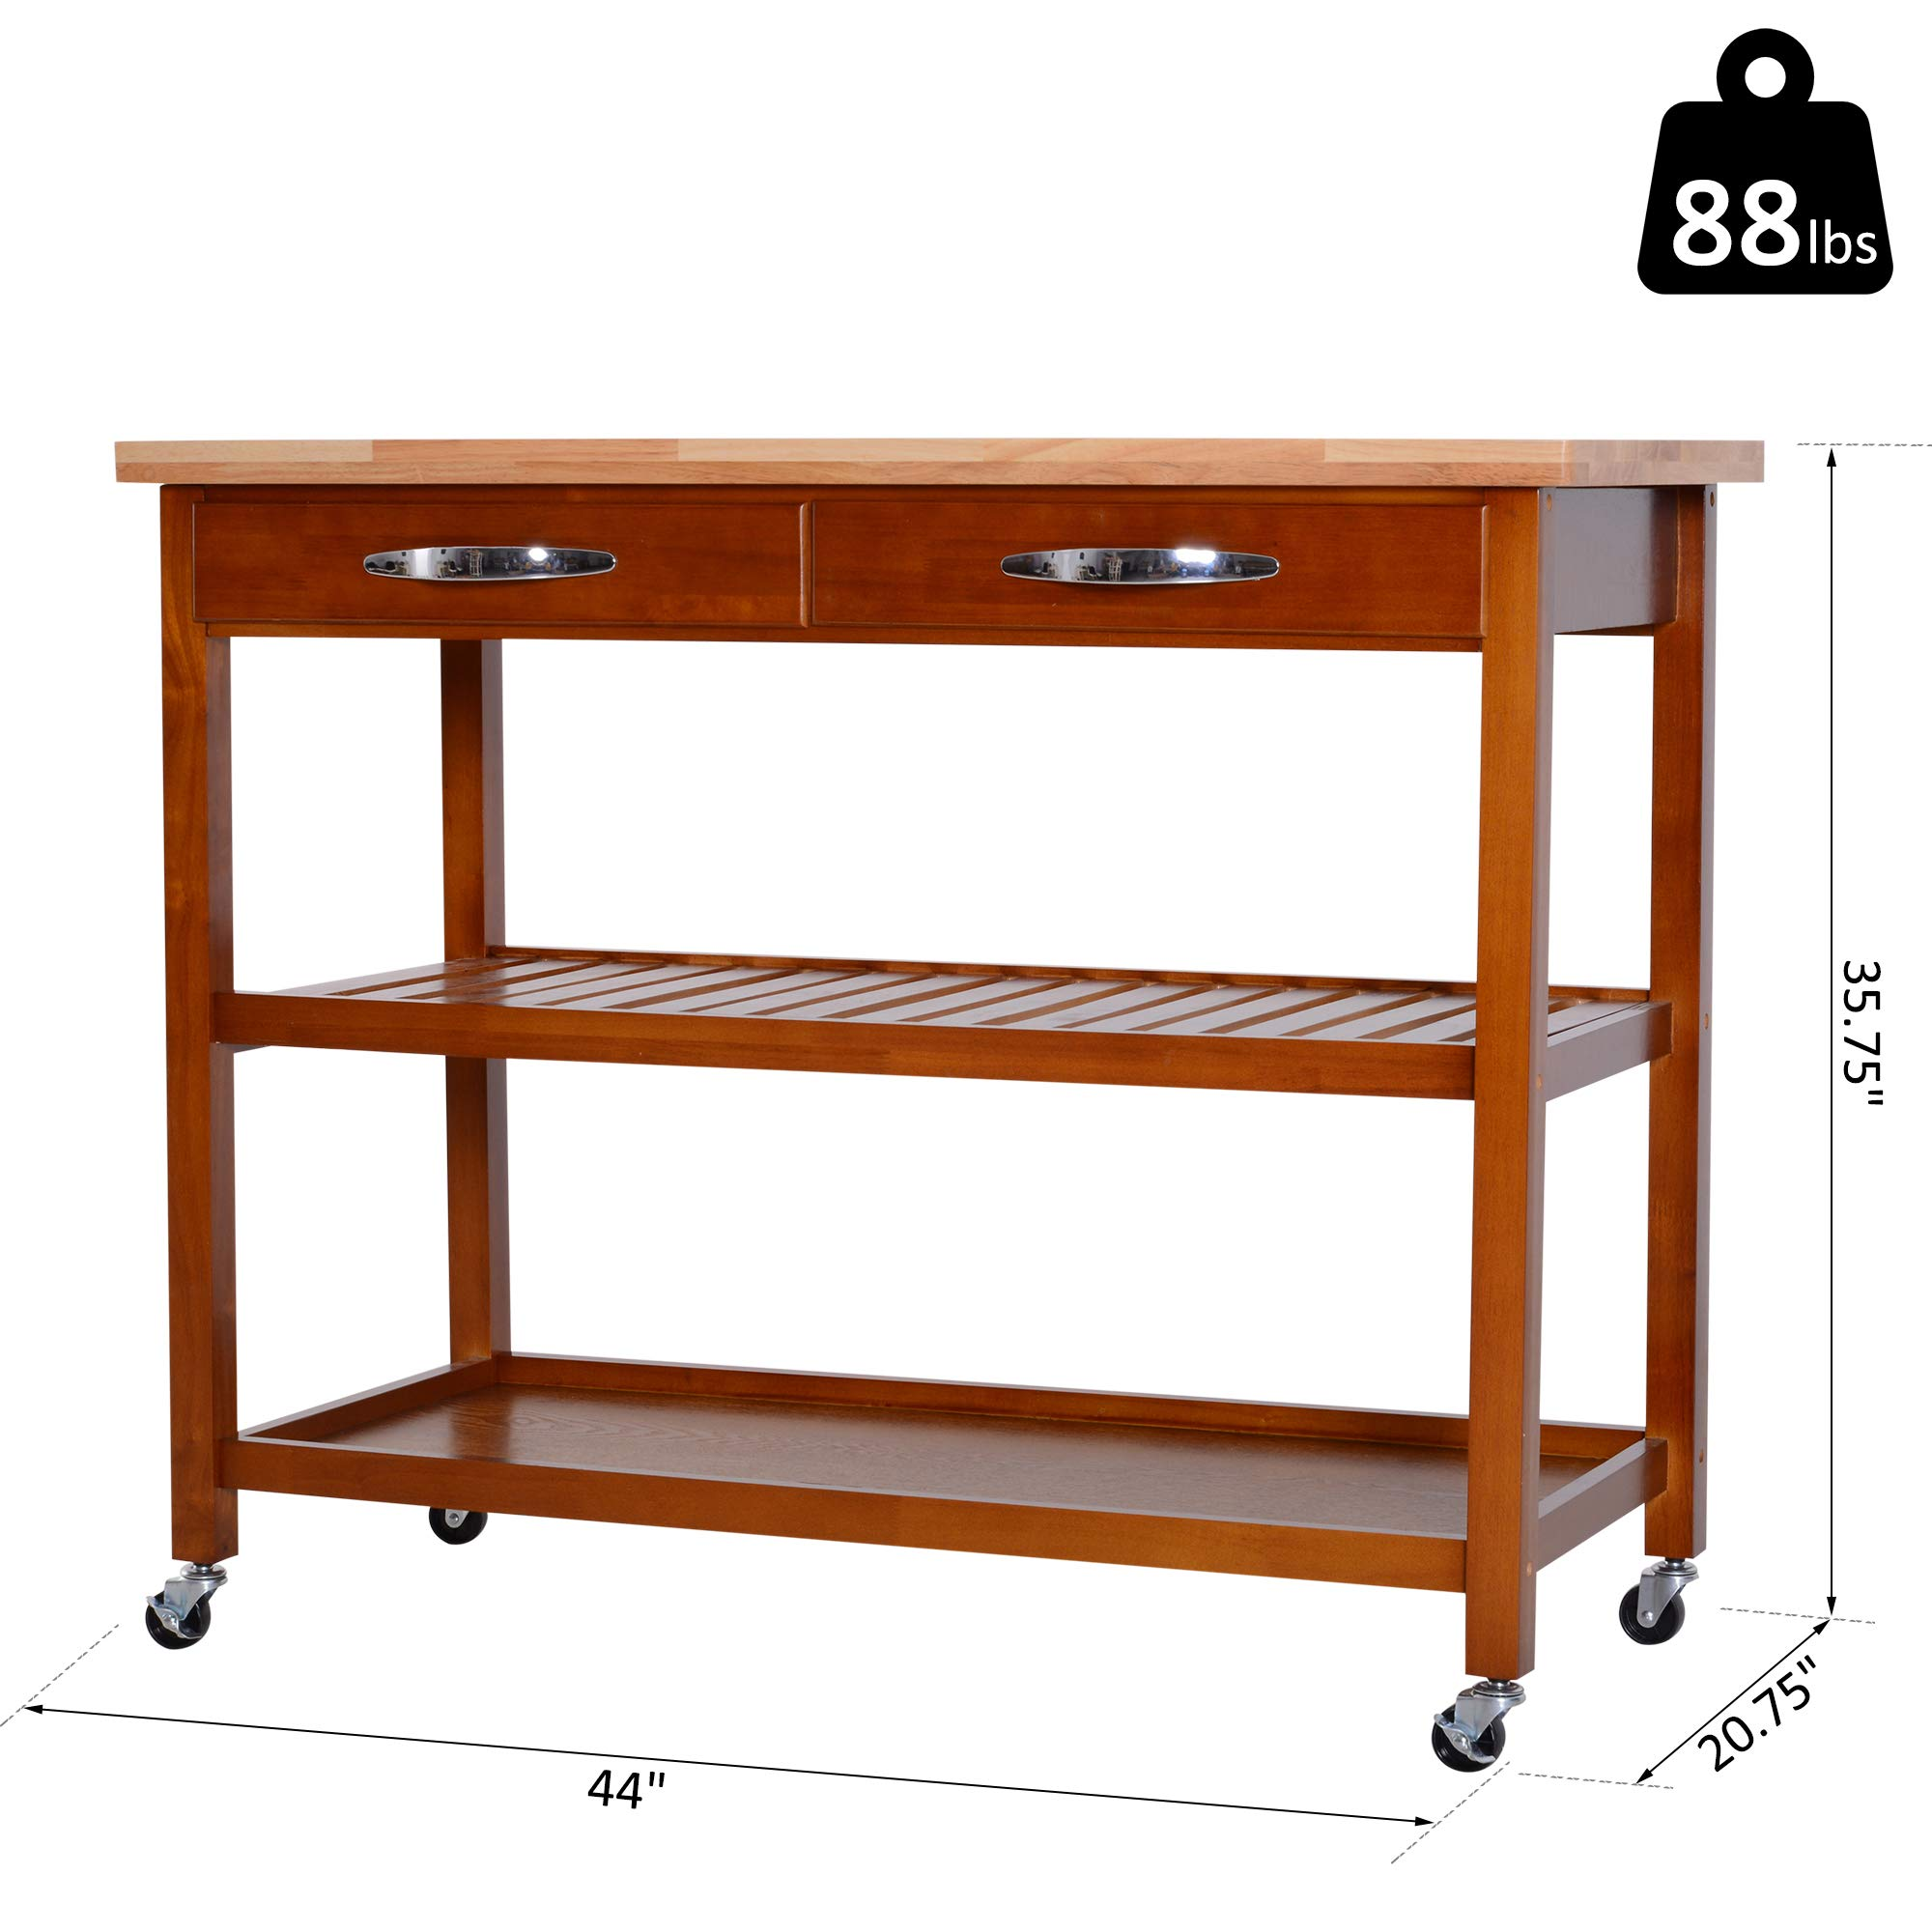 HOMCOM 44'' 3-Tier Rubberwood Kitchen Island Cart on Wheels - Brown by HOMCOM (Image #7)